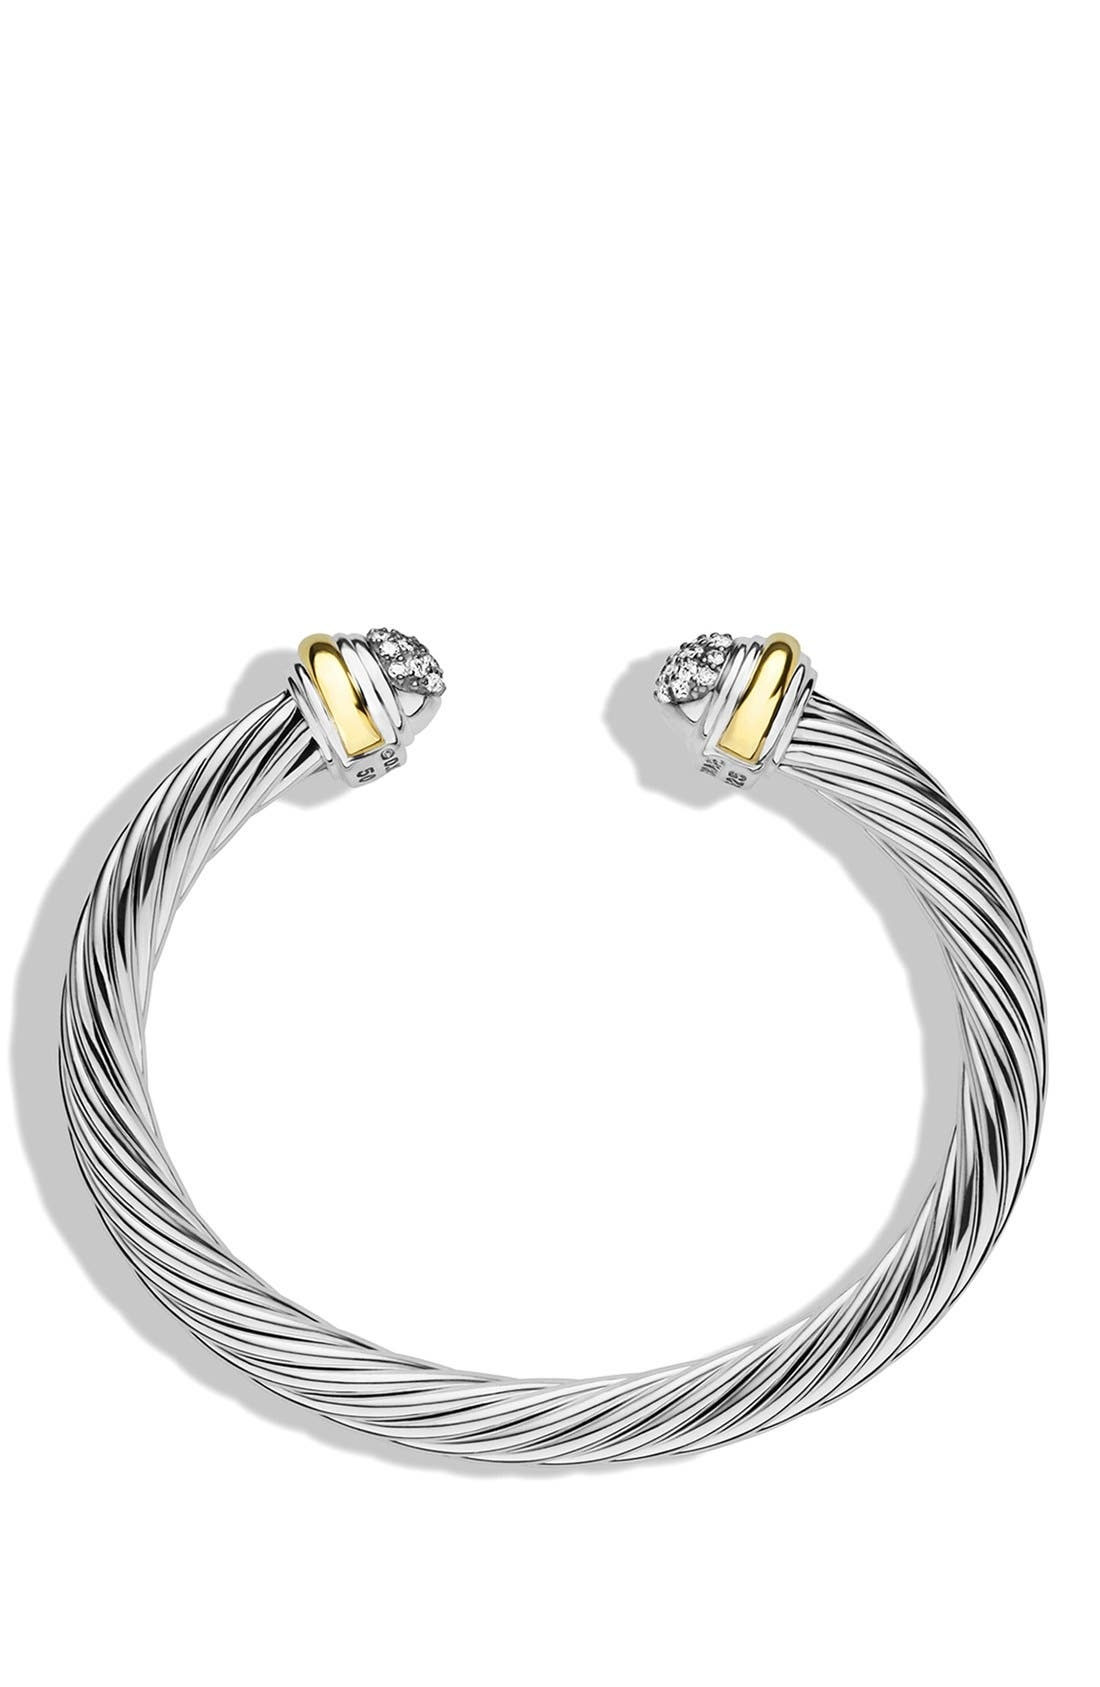 Cable Classics Bracelet with Diamonds and 18K Gold, 7mm,                             Alternate thumbnail 2, color,                             DIAMOND